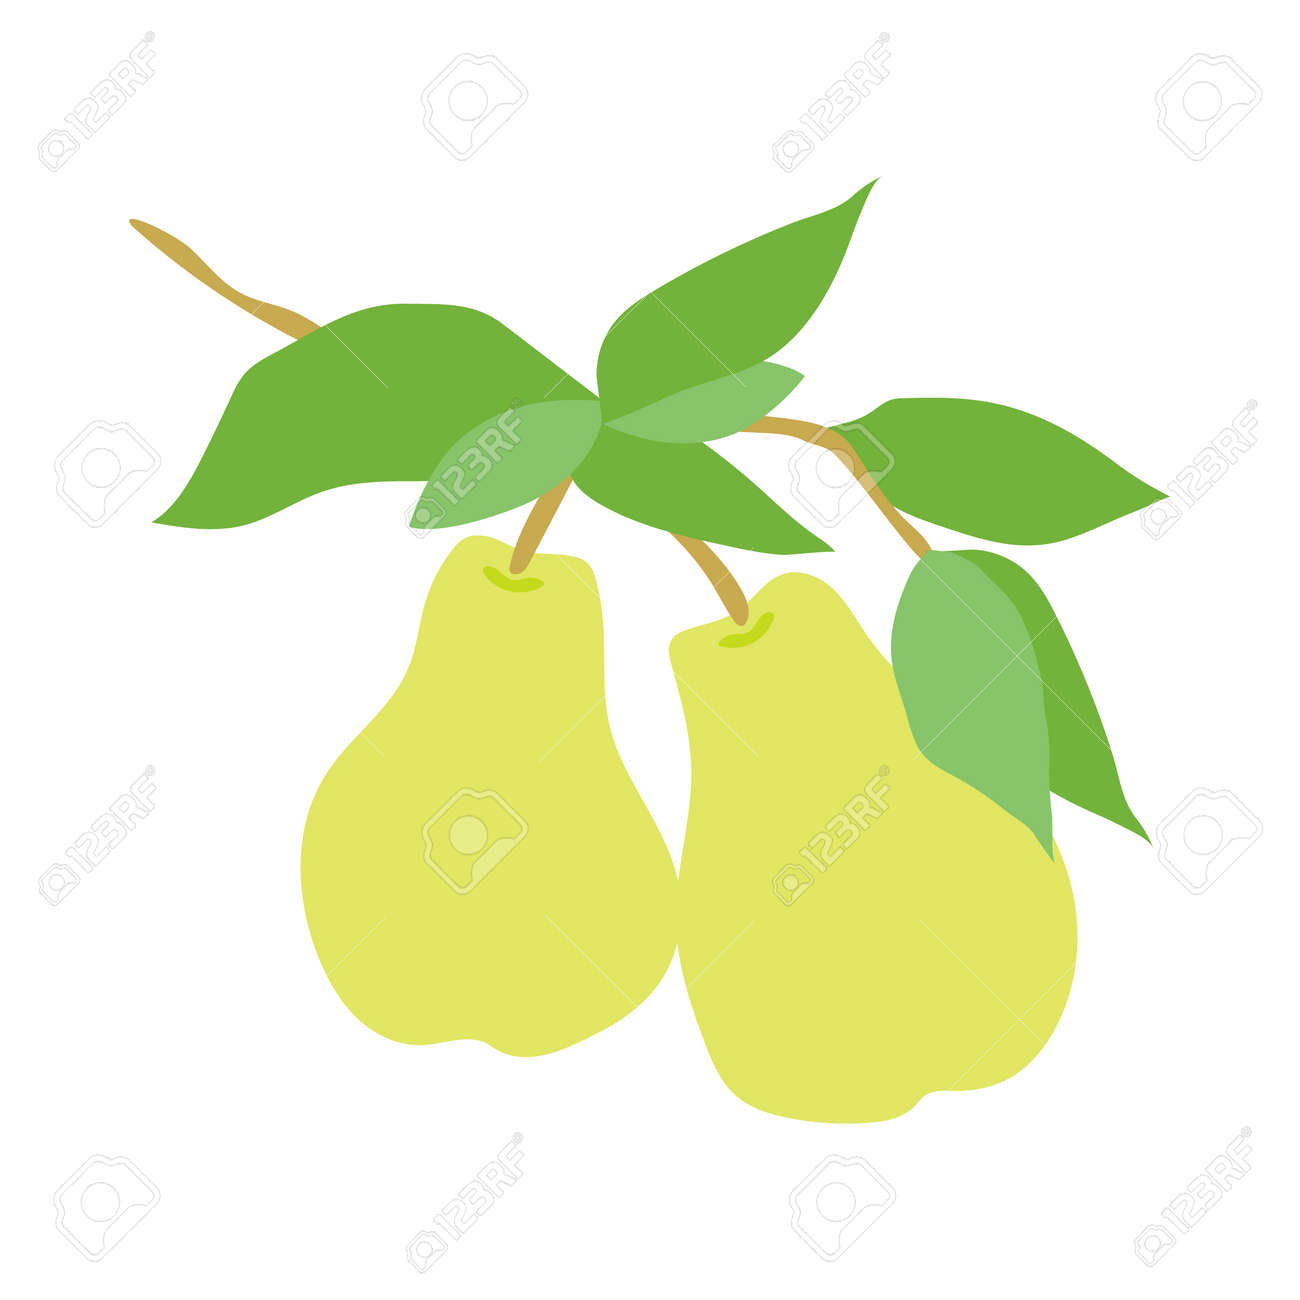 Fruit pear branch. Stock vector illustration isolated on white background. Hand drawn pears hanging on branch with leaves. Kitchen design decoration, food packaging, flat food illustration, fruit tree - 166636596